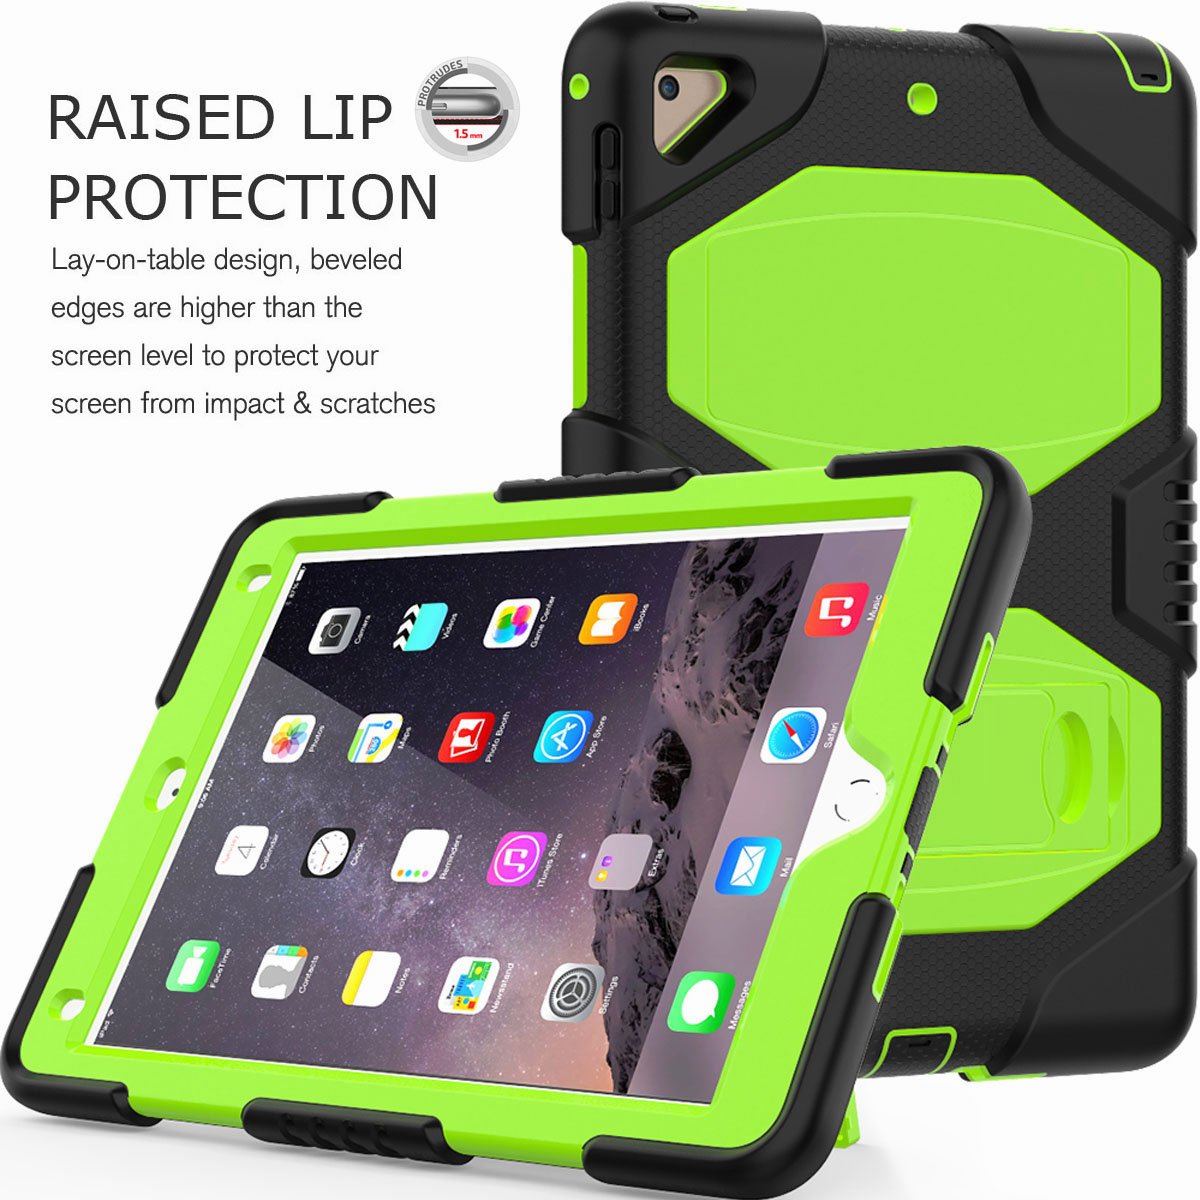 Hybrid-Rubber-Heavy-Duty-Shockproof-Case-Cover-For-iPad-9-7-6th-Generation-2018 thumbnail 21